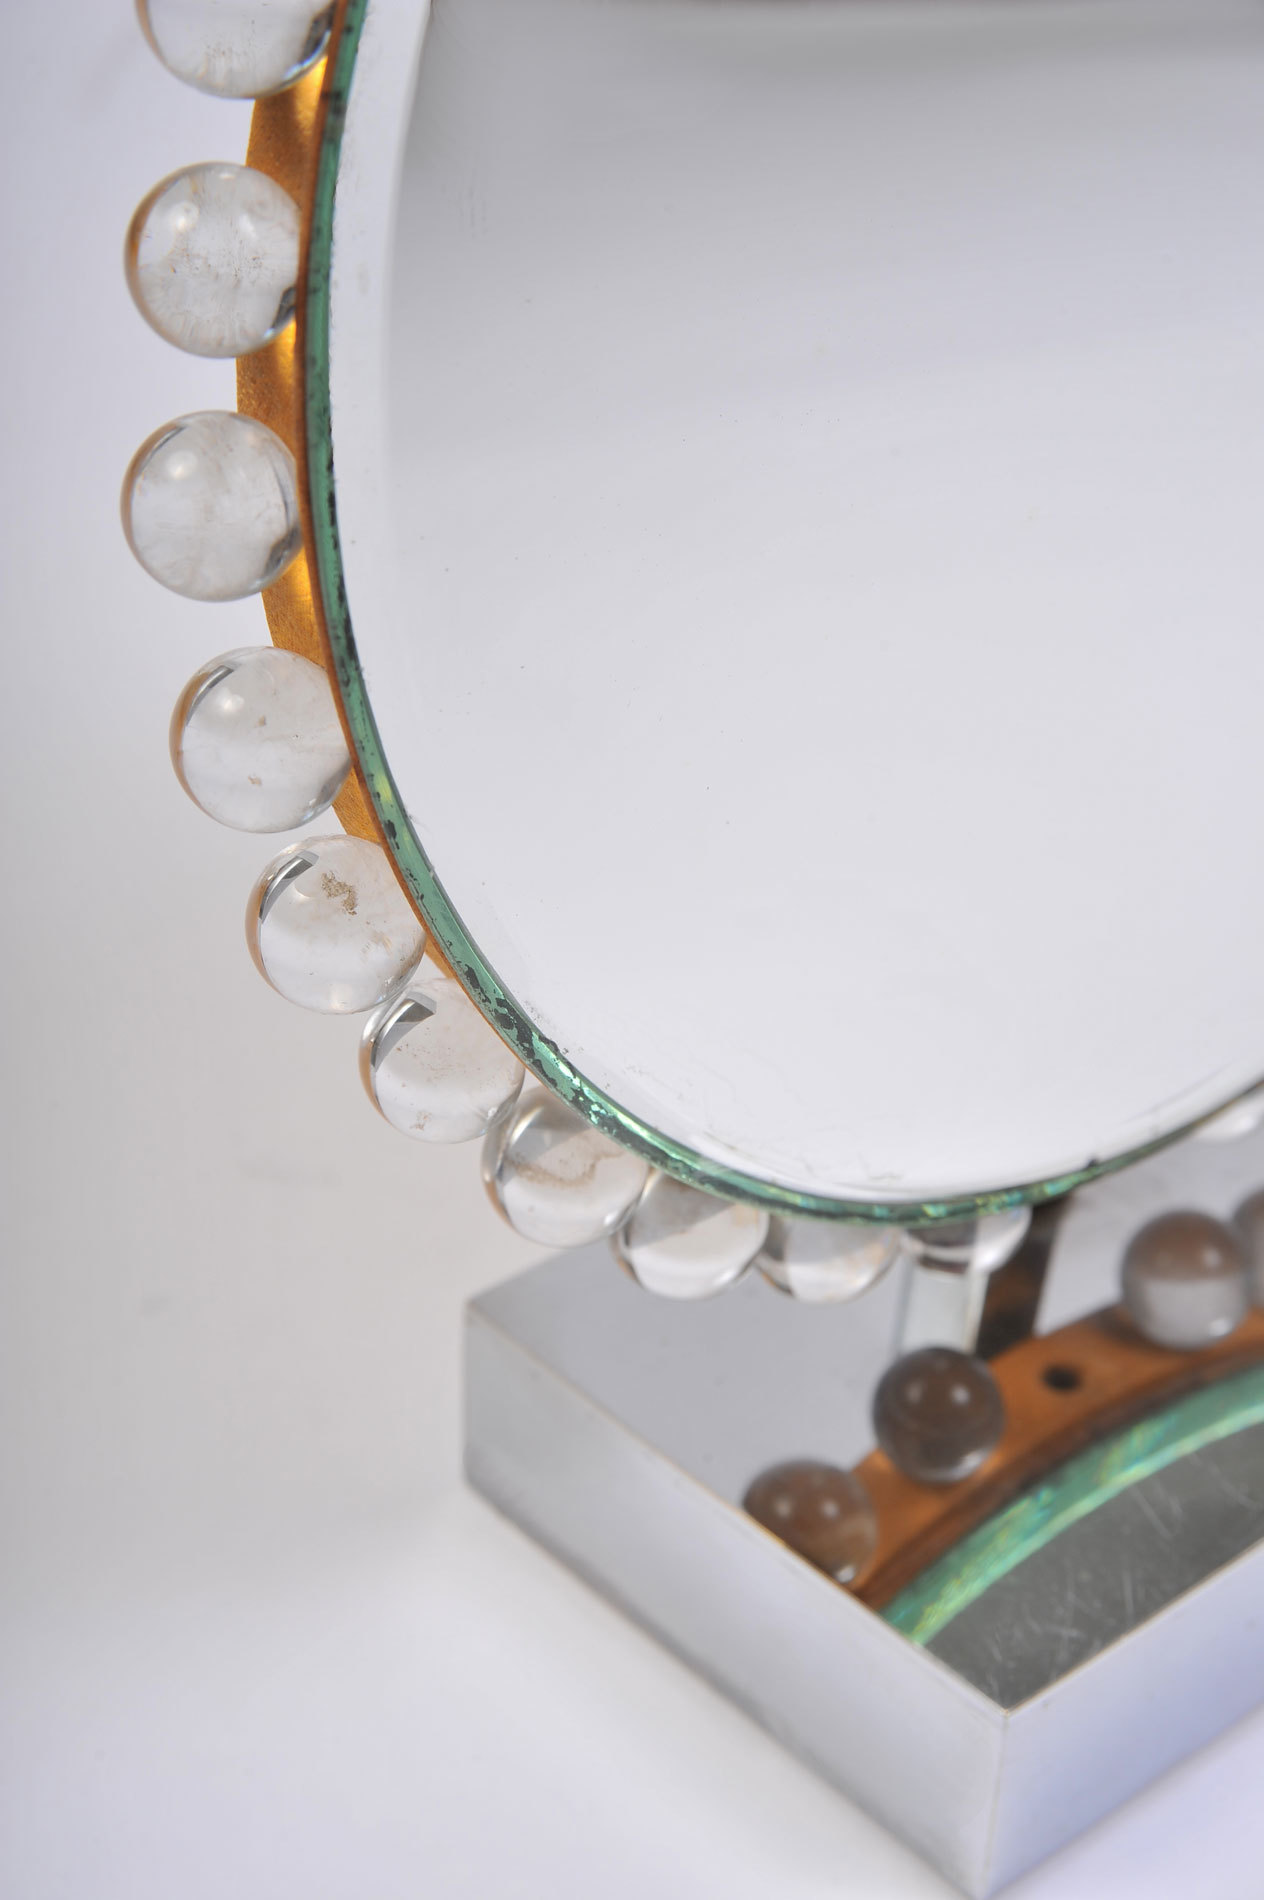 The image for Circular Ball Mirror 04